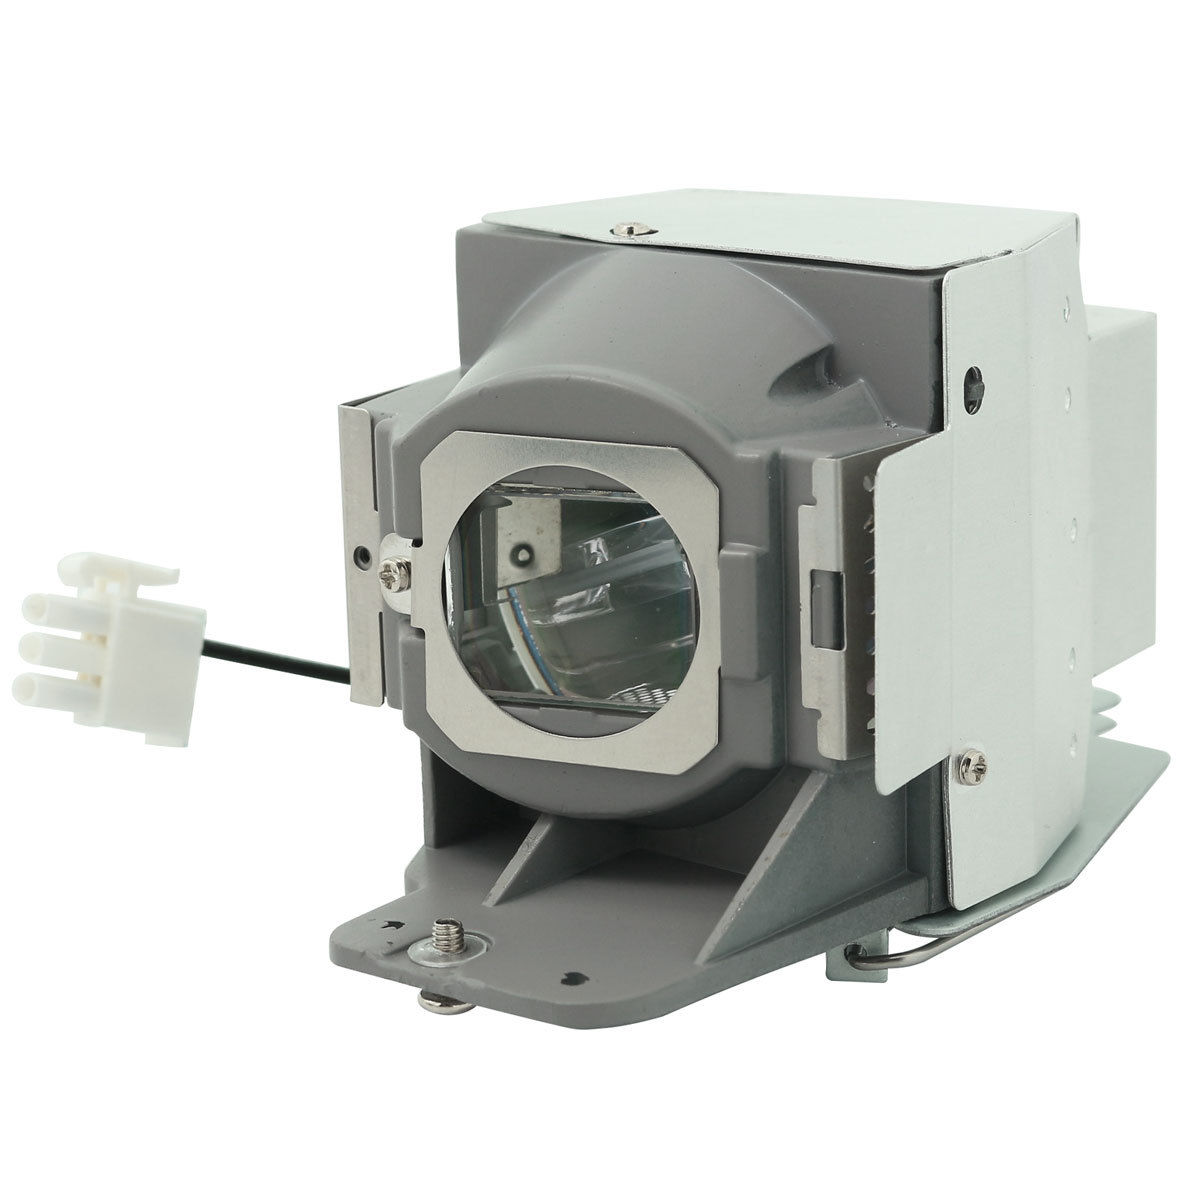 Projector Lamp Bulb MC.40111.001 / MC.40111.002 for Acer X1240 X1140 X1140A X111 Projector Bulb Lamp with housing free shipping free shipping lamtop projector lamp with housing mc jgl11 001 for x1263